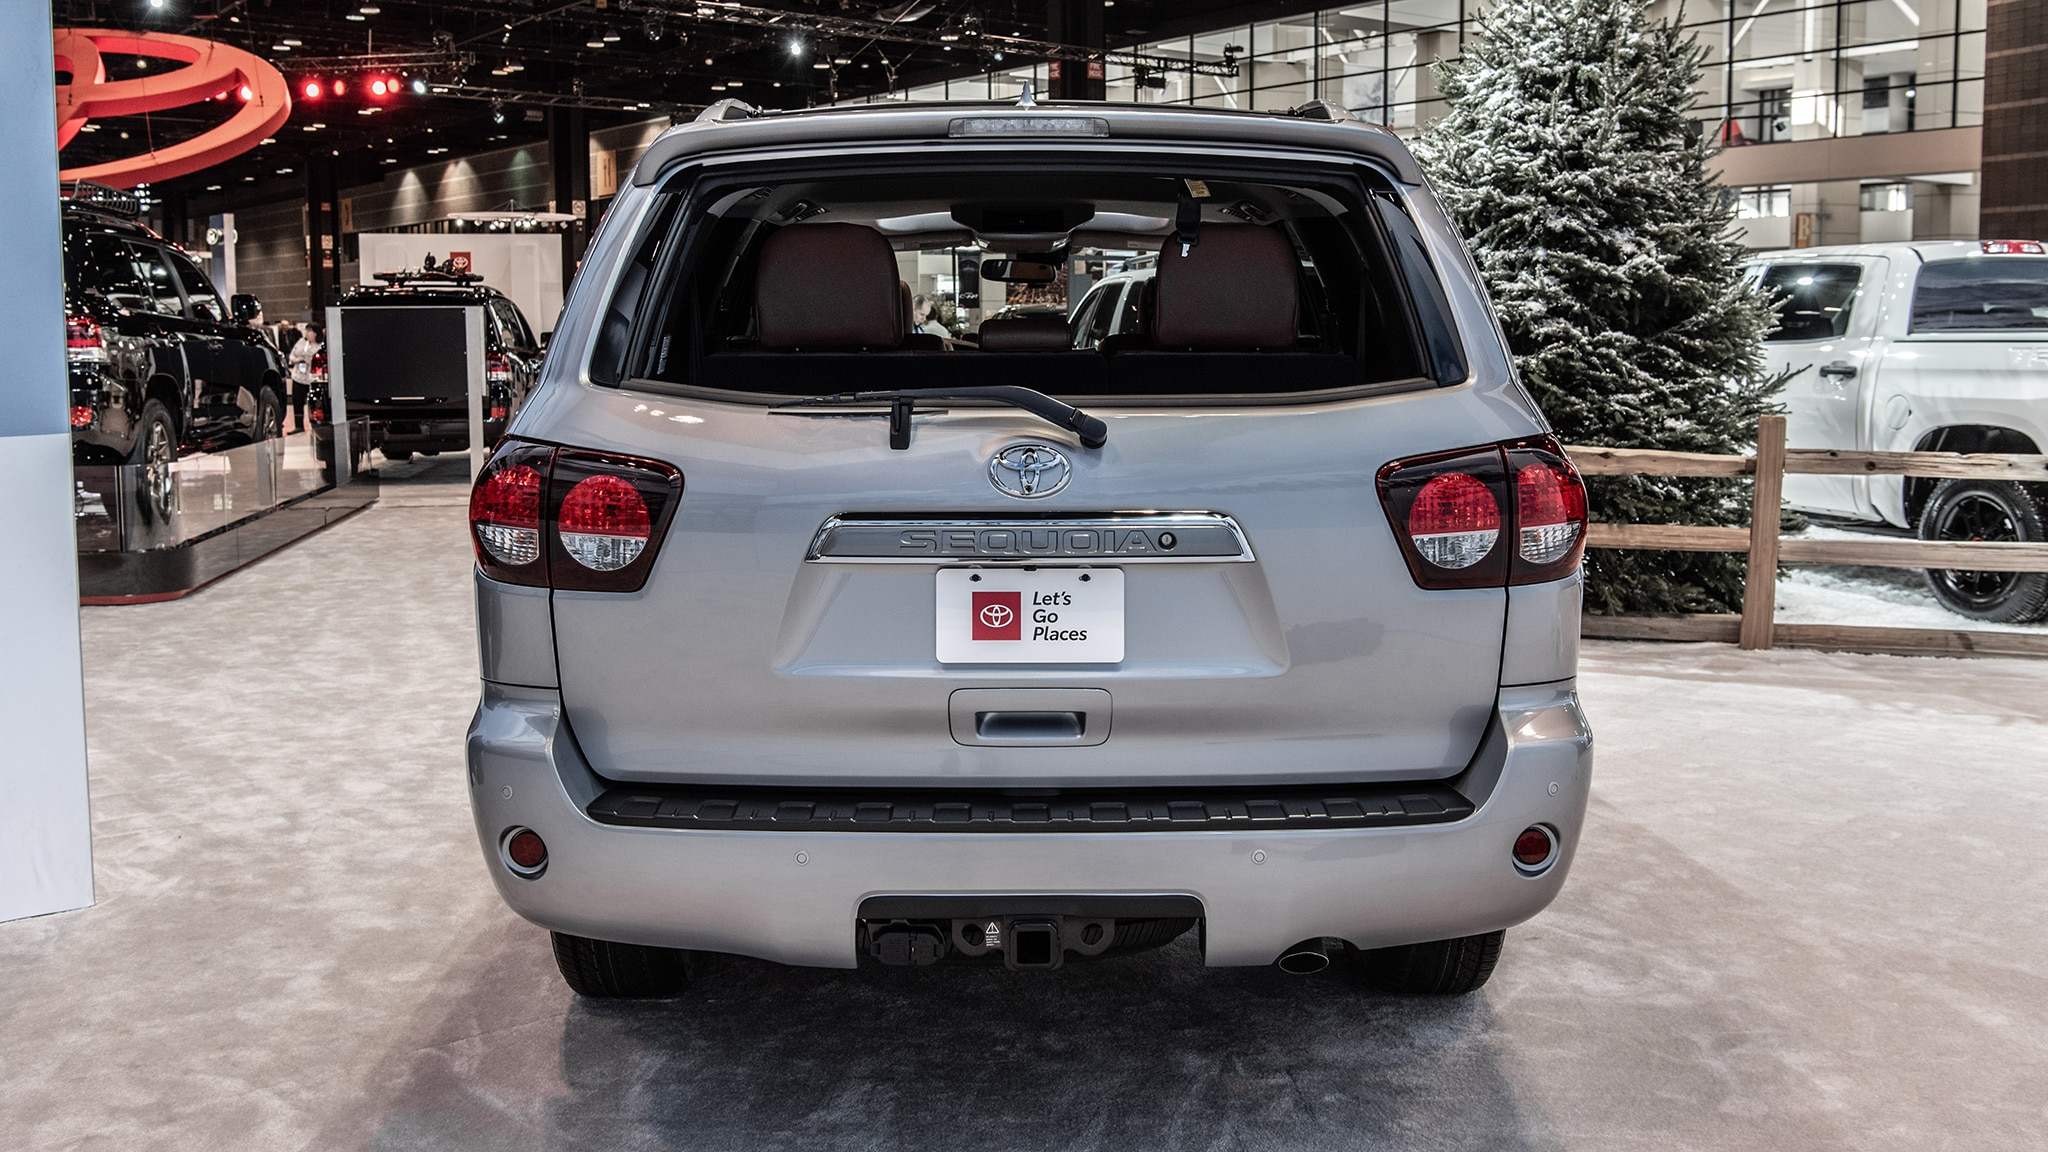 2020 Toyota Sequoia Review, Interior, TRD Pro >> 2019 Toyota Sequoia Trd Sport Review Dated Night